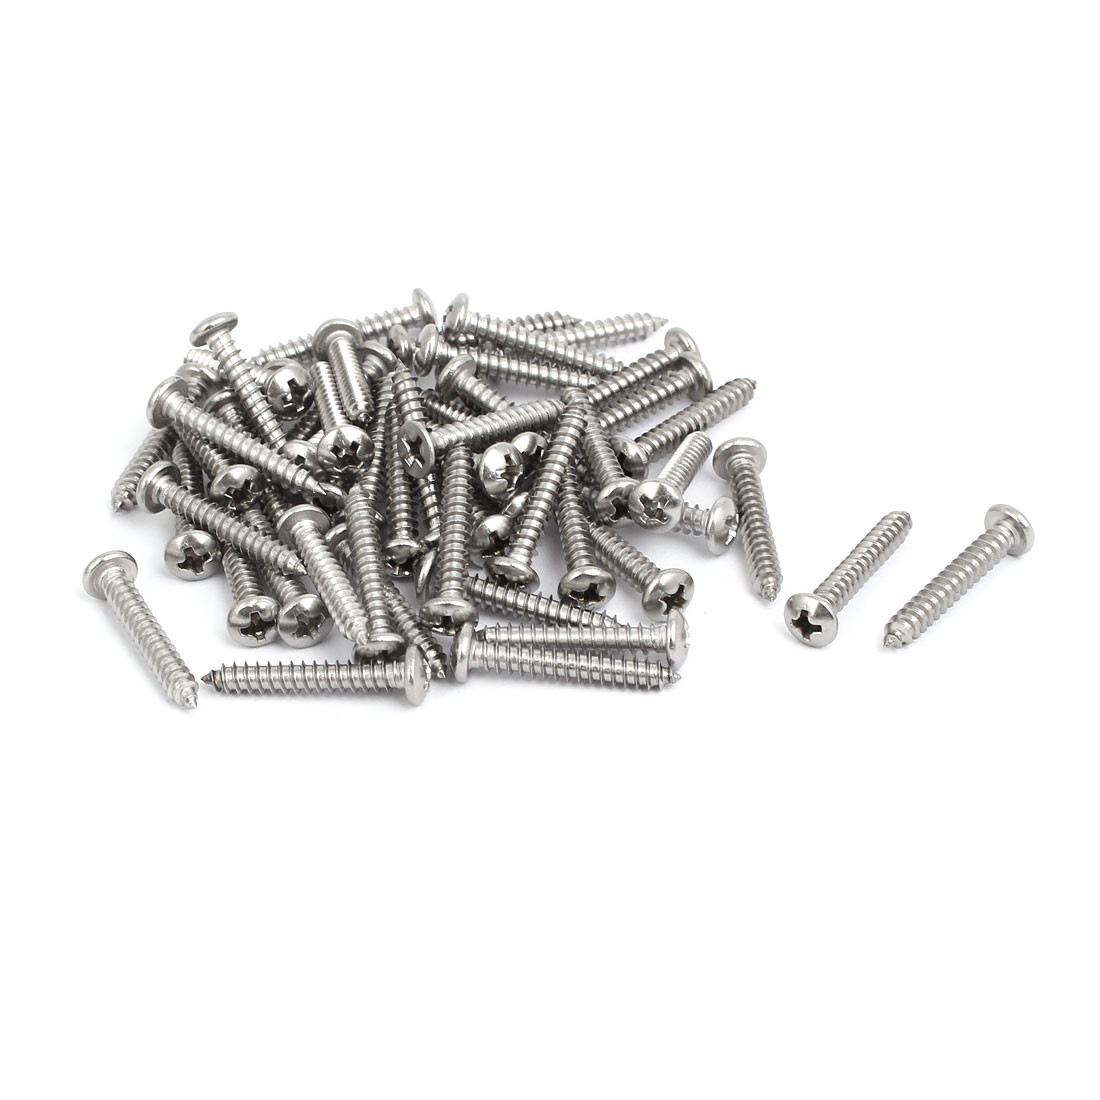 M4x25mm 304 Stainless Steel Phillips Drive Pan Head Self Tapping Screws 50pcs